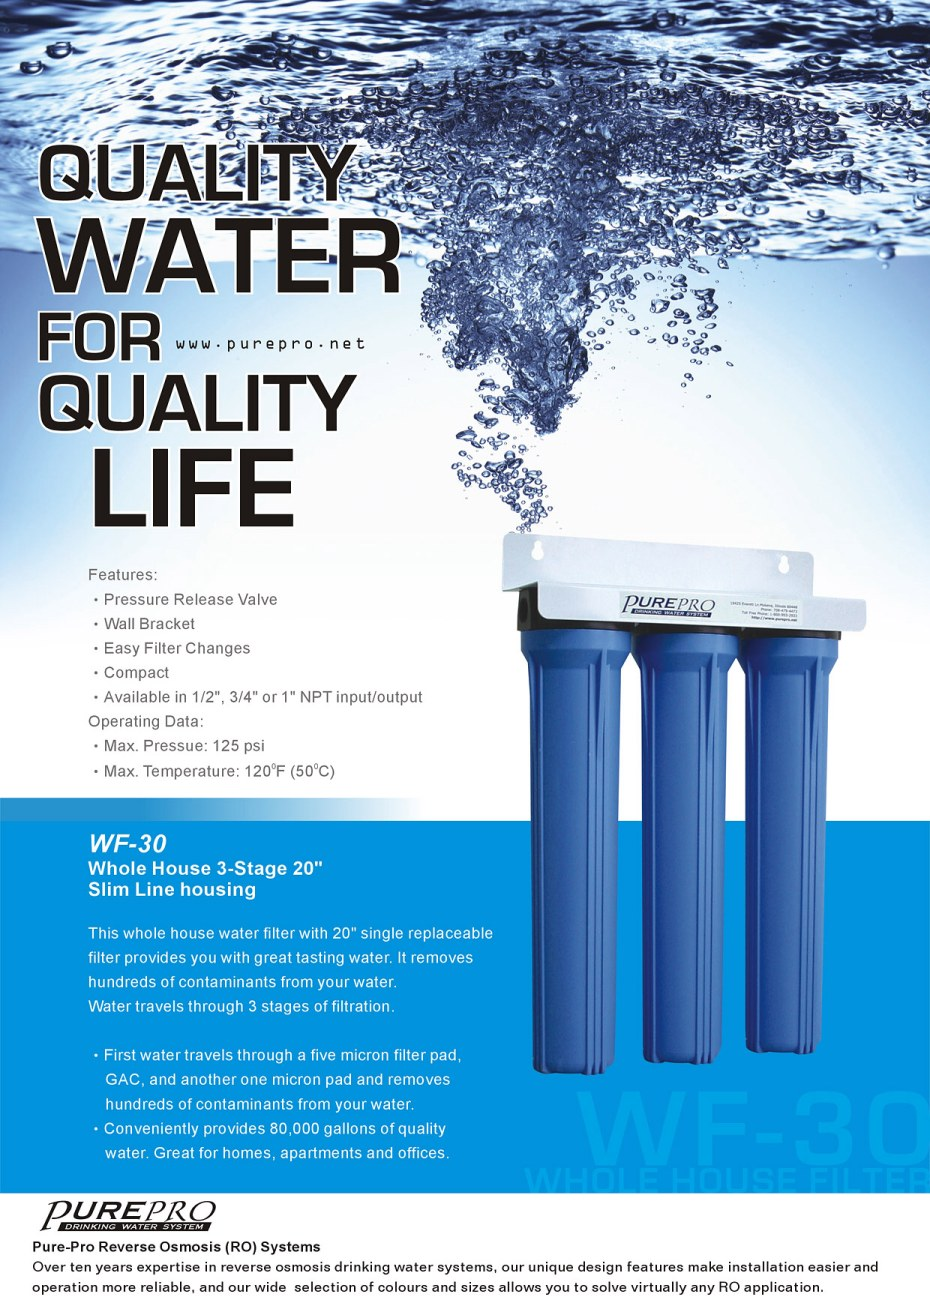 PurePro® Reverse Osmosis Water Filter Systems - US Manufacturer